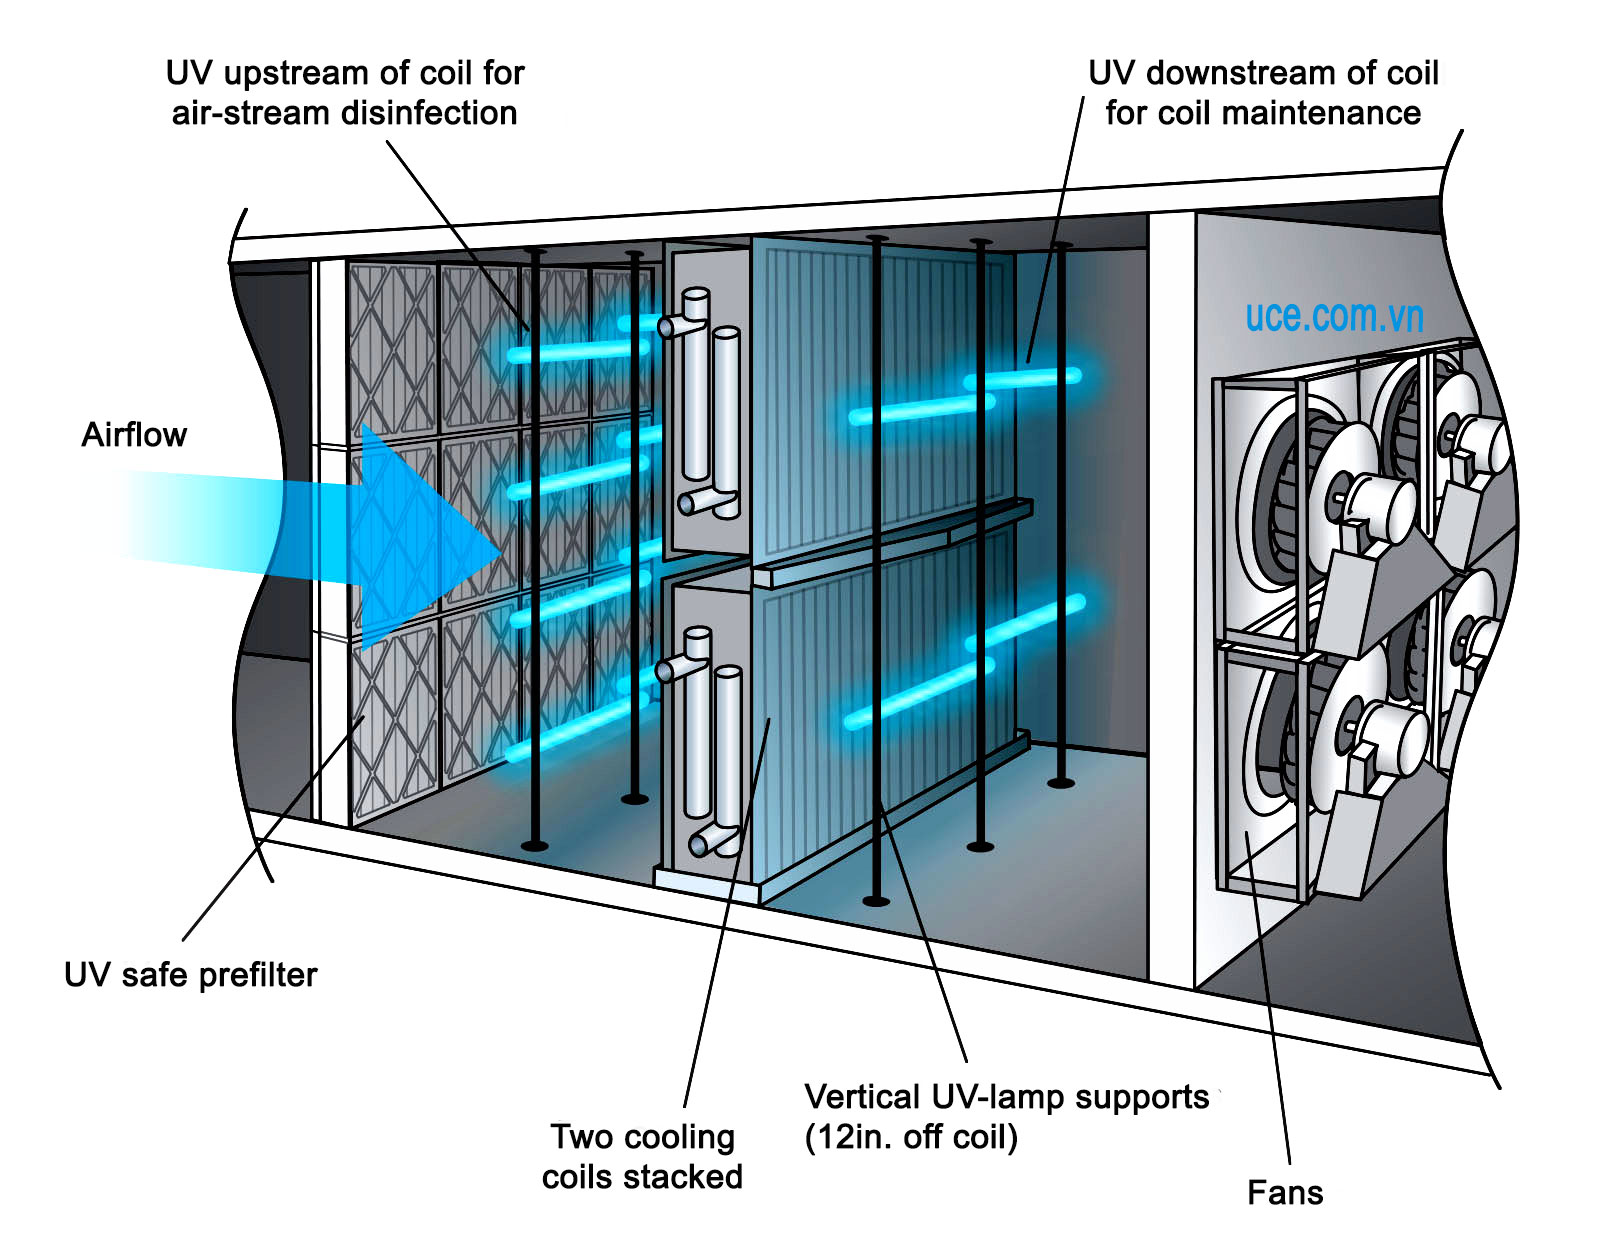 Built-in UV lamp after dust filter of AHU